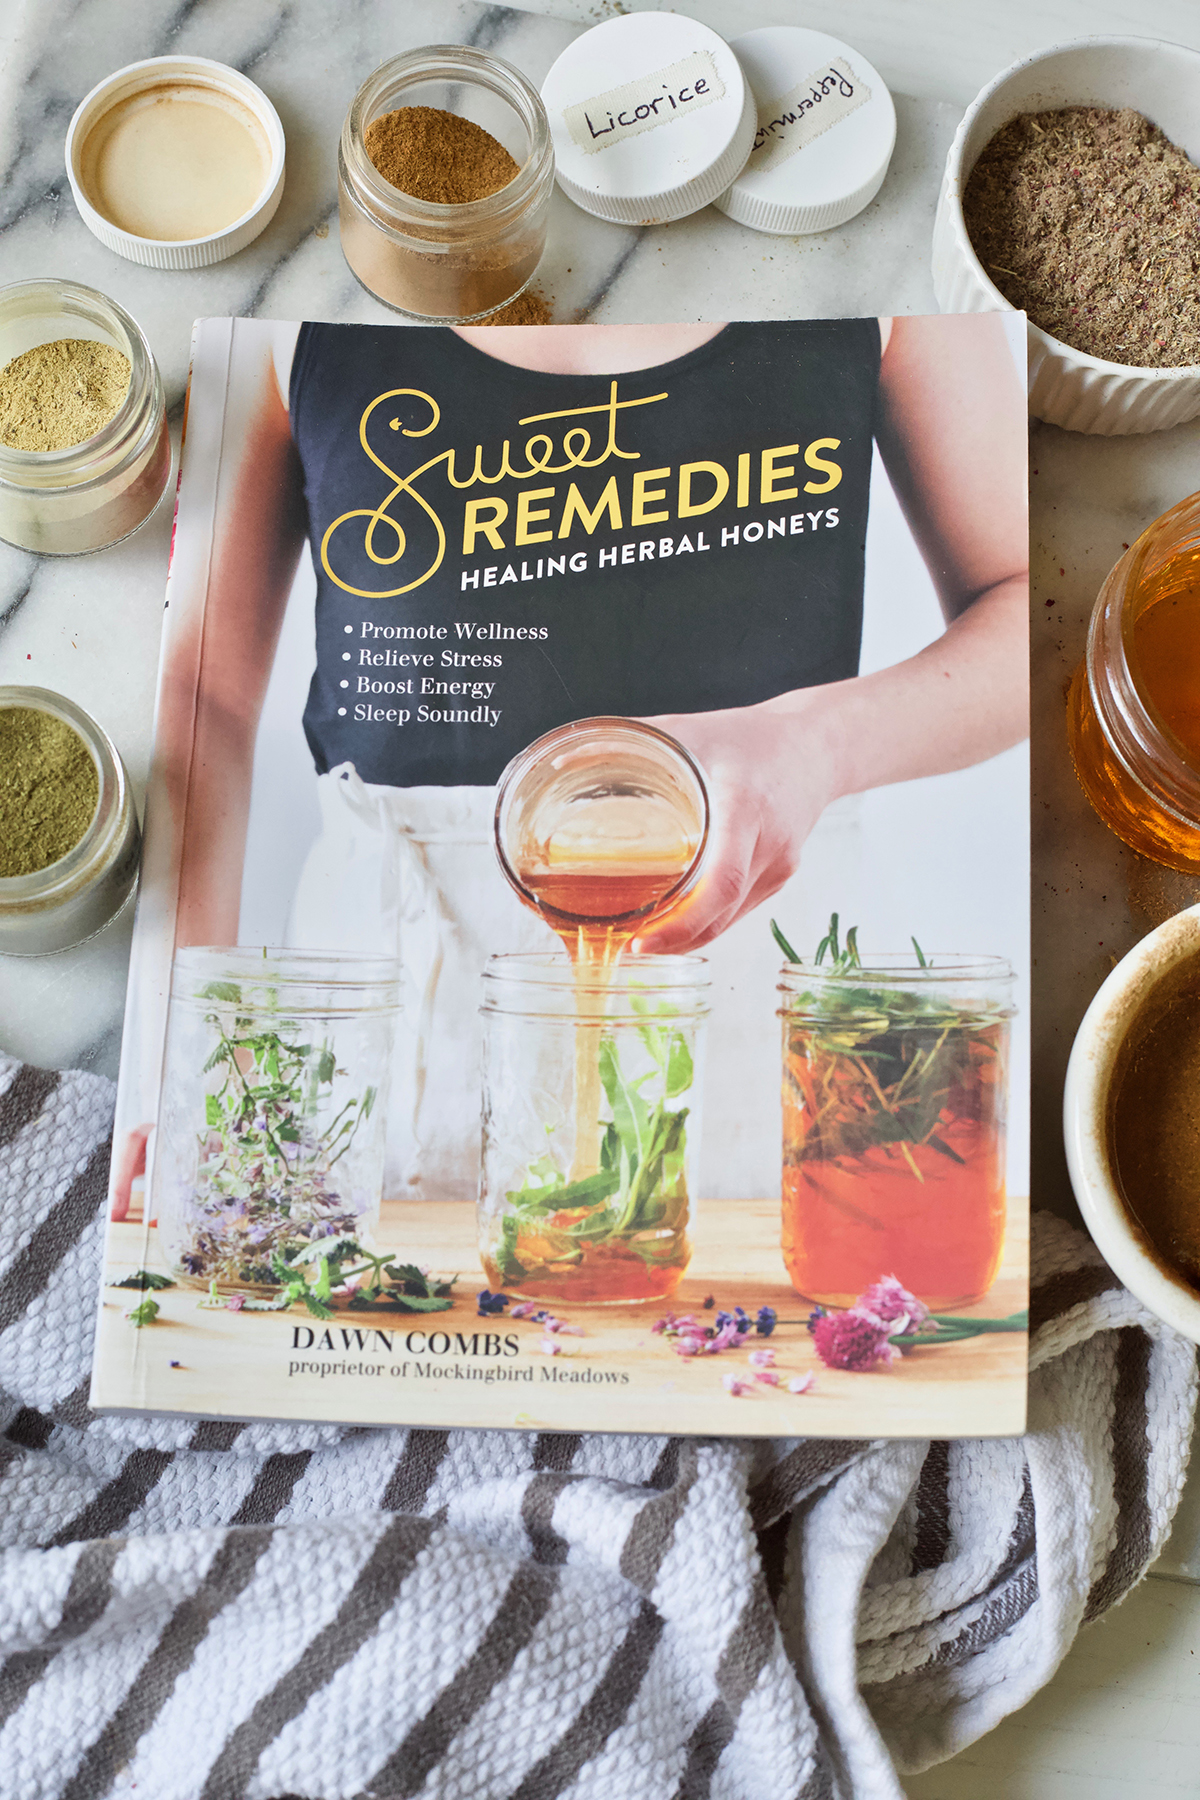 A DIY Herbal Electuary To Give Your Next Smoothie A Wellness Boost   Herbal Academy   Learn how to make and use an herbal electuary smoothie base that provides concentrated herbal benefits while making your morning routine even easier.